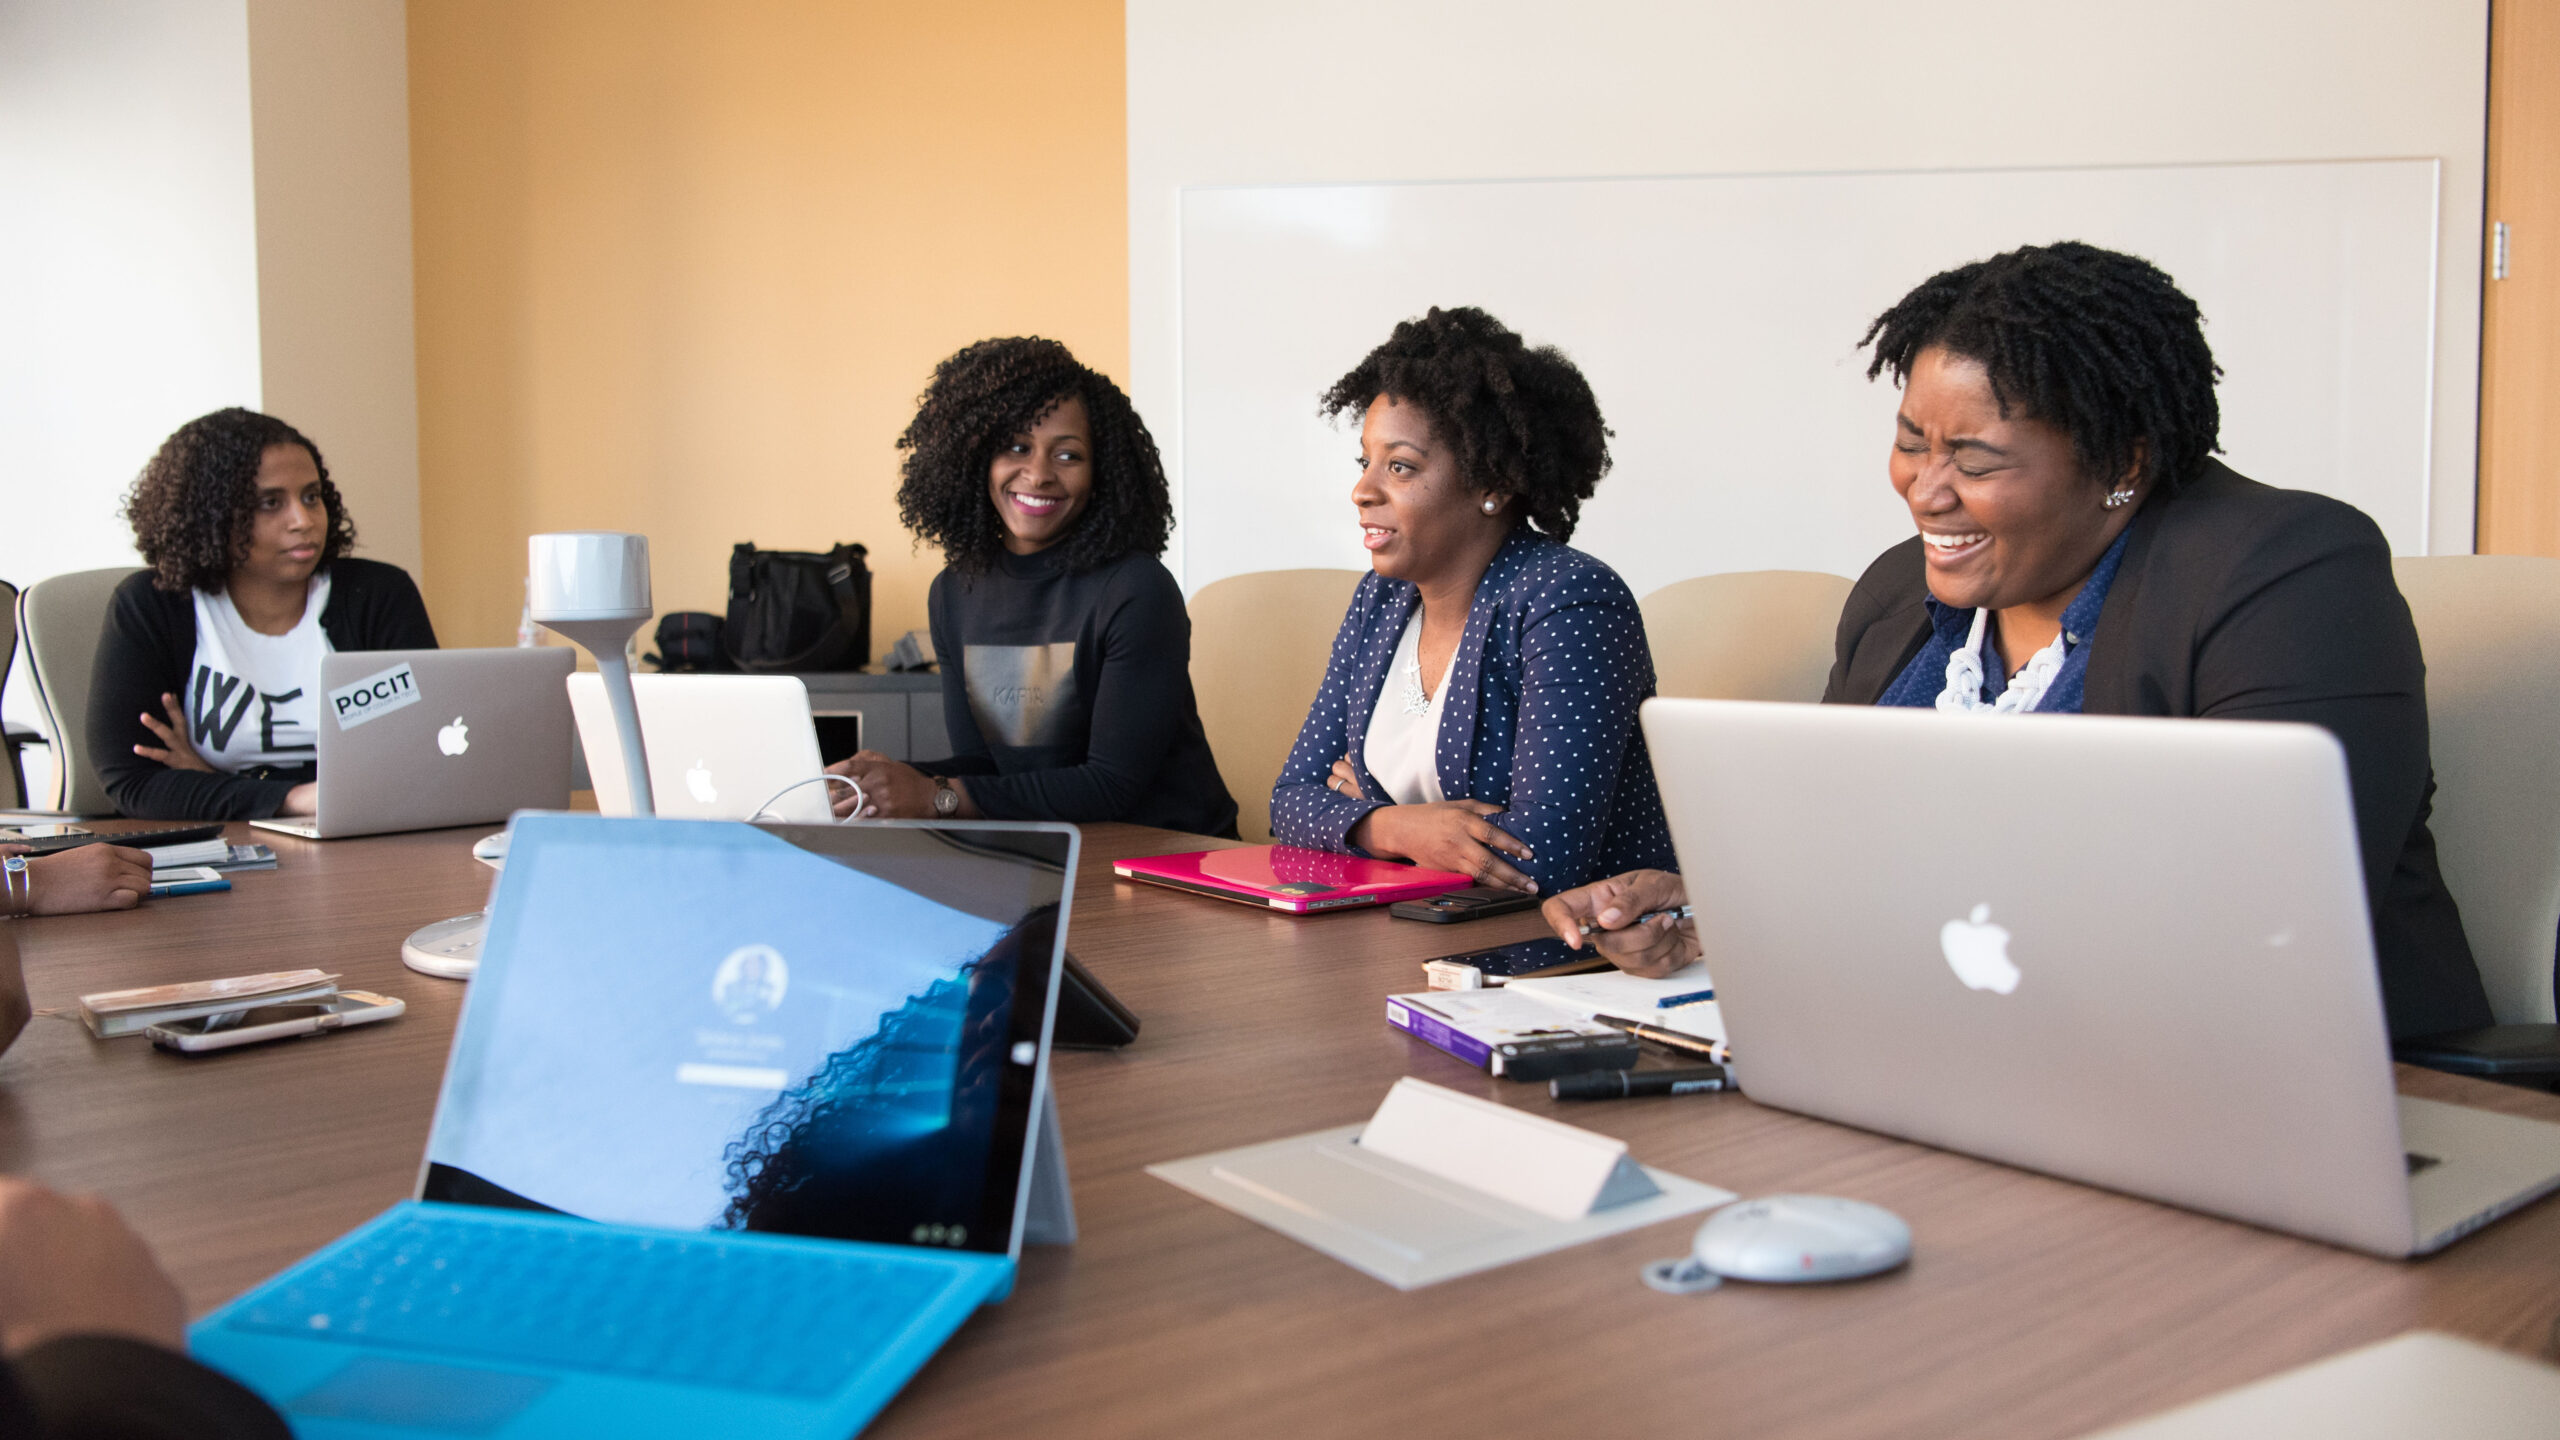 Four professional women of colour are at a board table with laptops working.